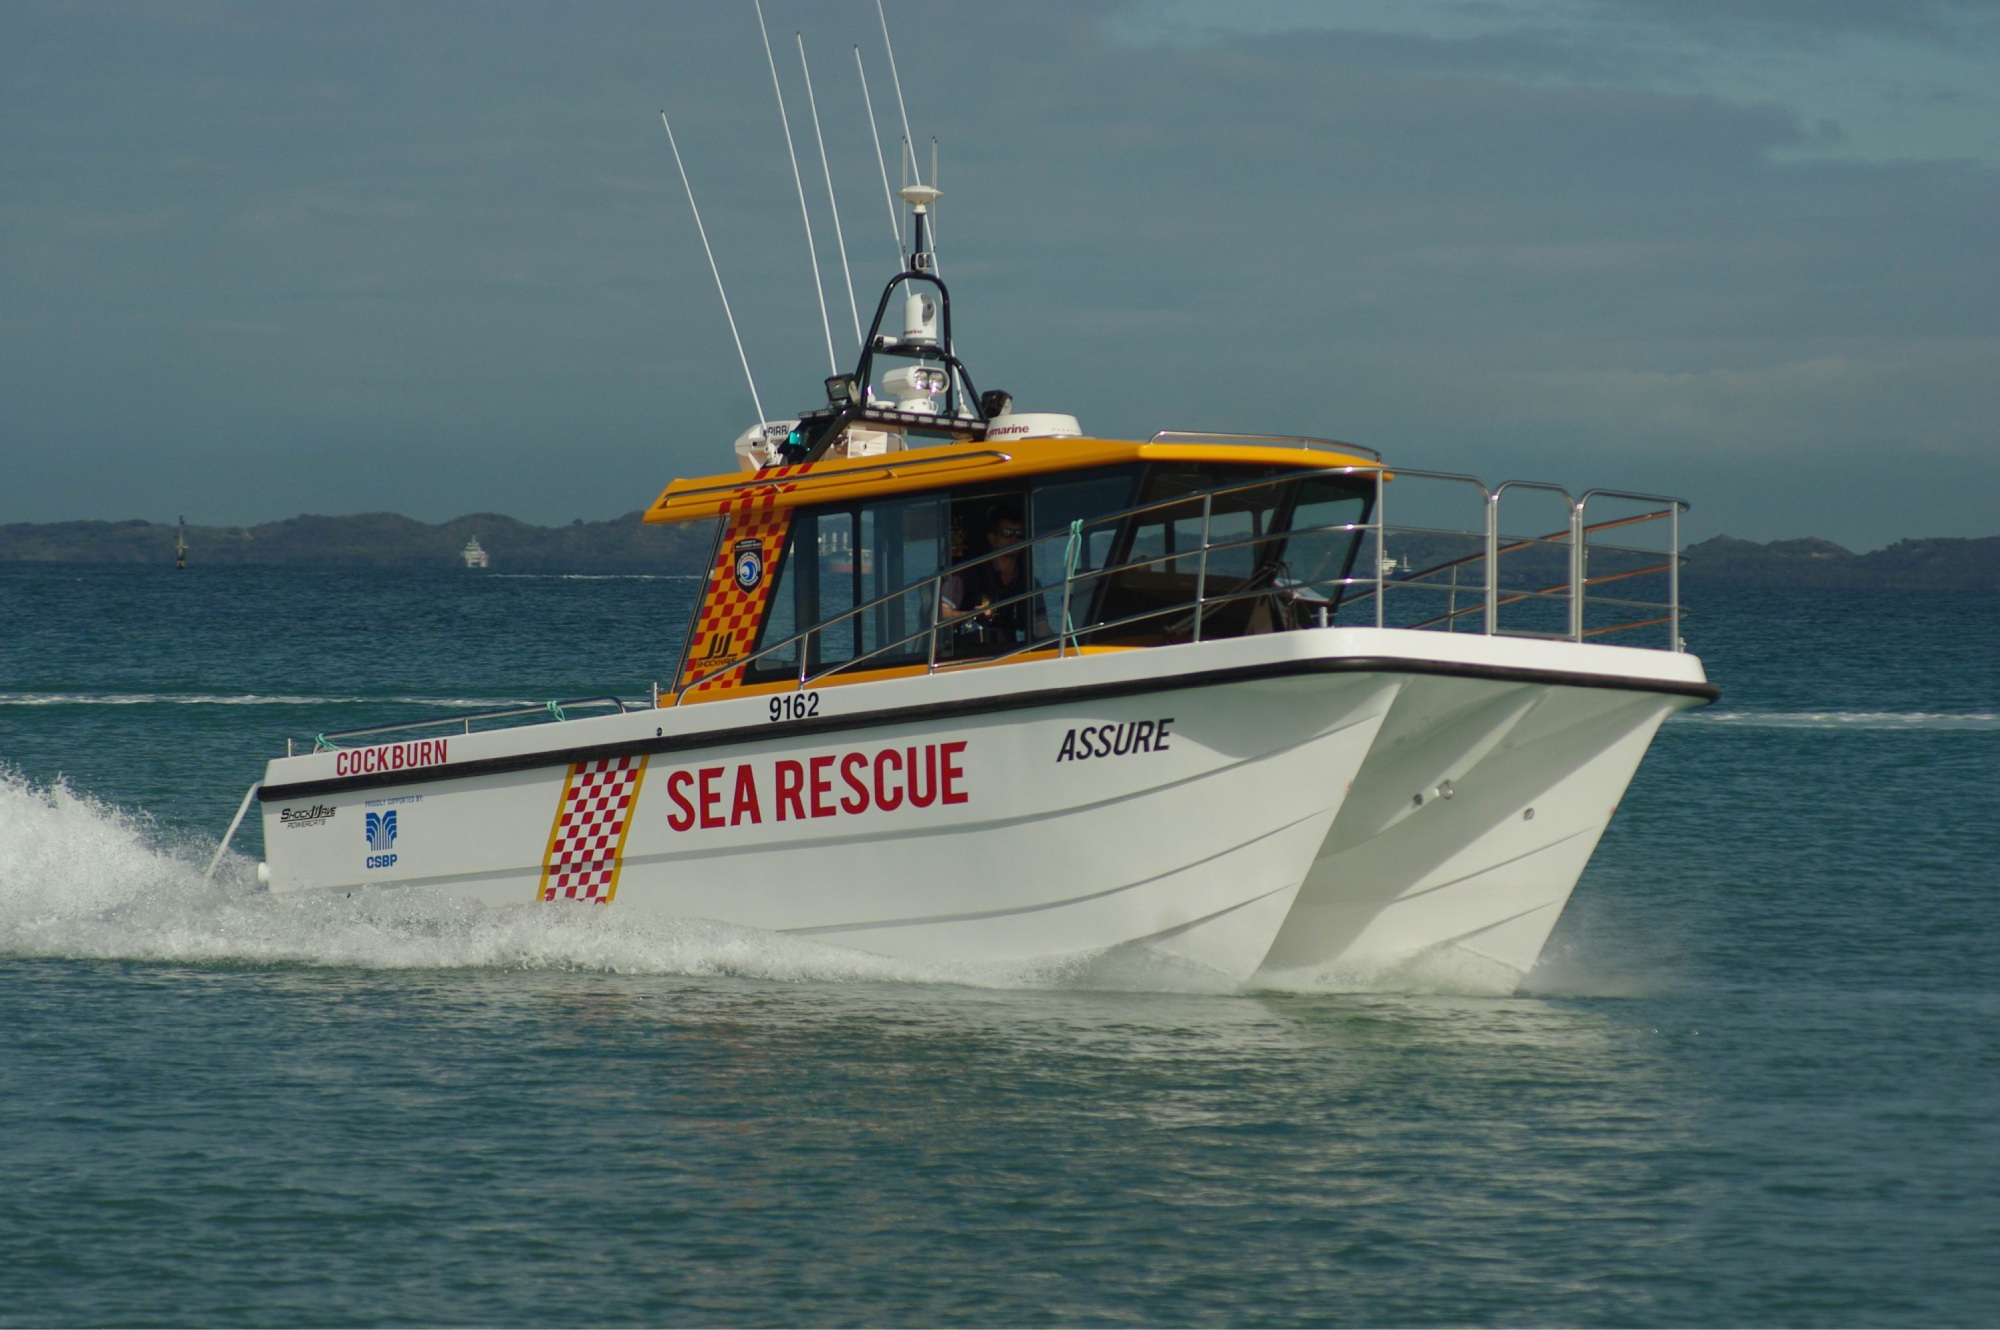 The Cockburn Volunteer Sea Search and Rescue Group's newest vessel, the Assure.